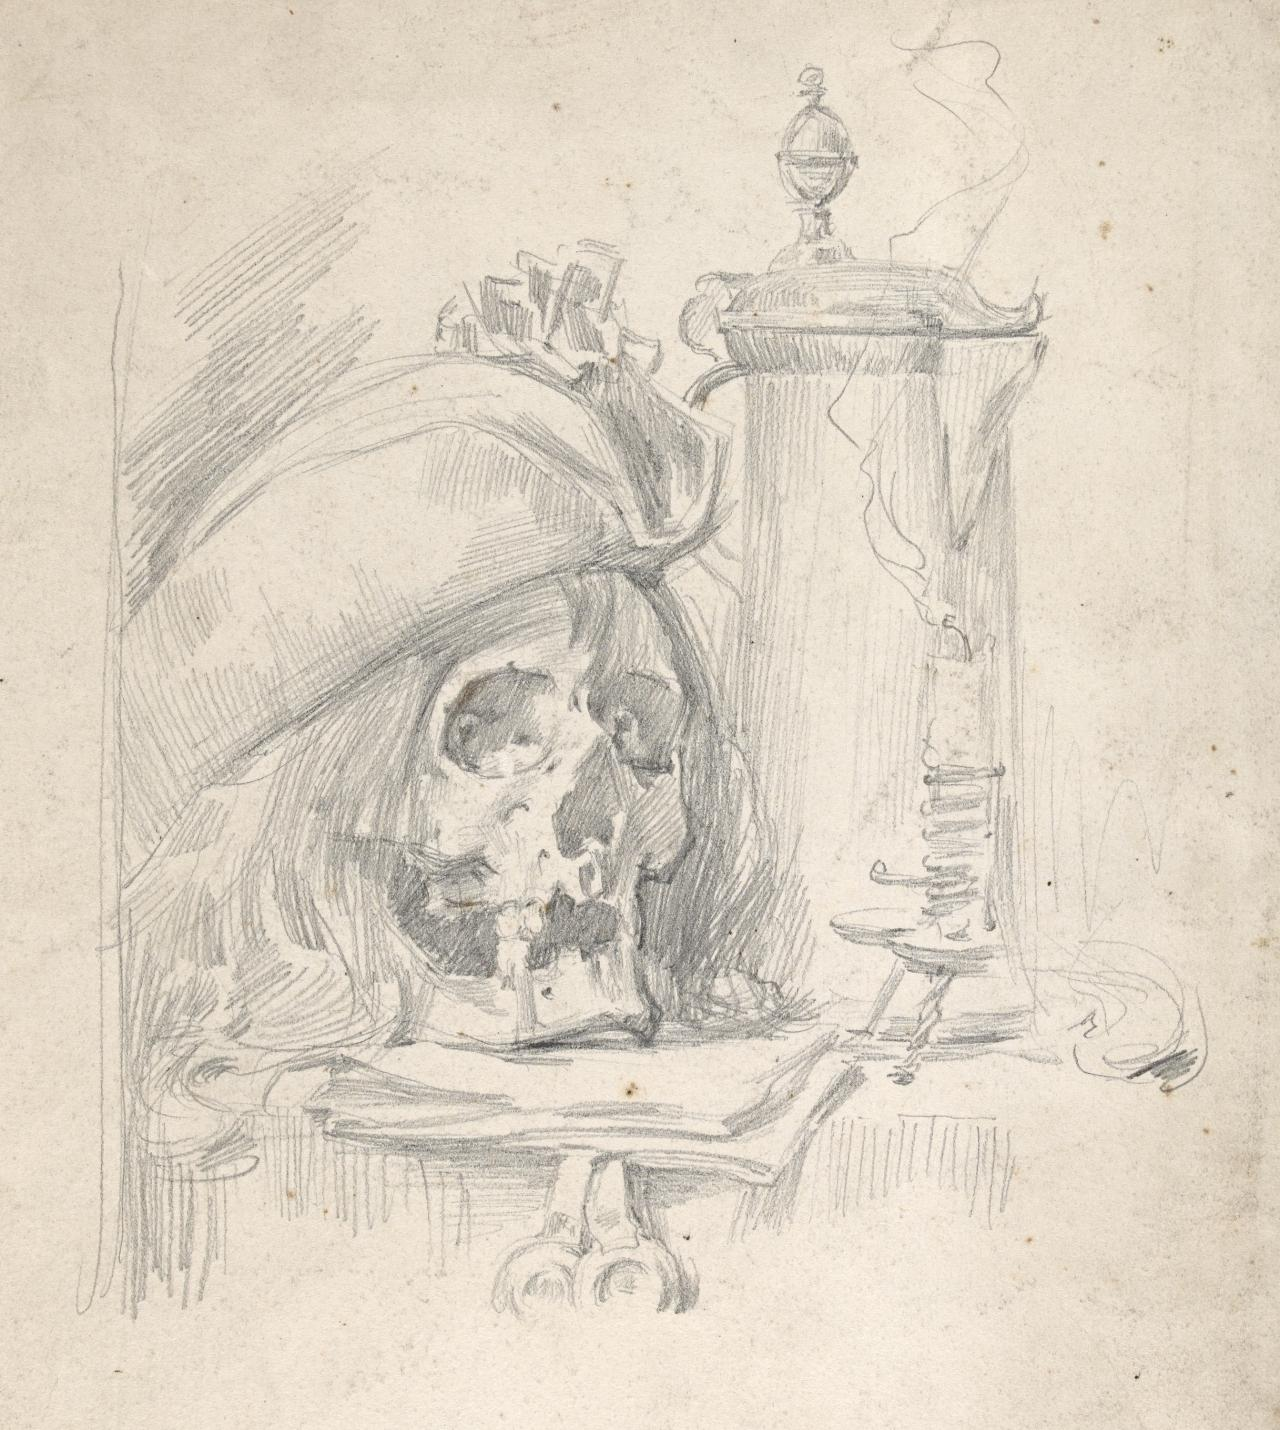 Skull and candlestick